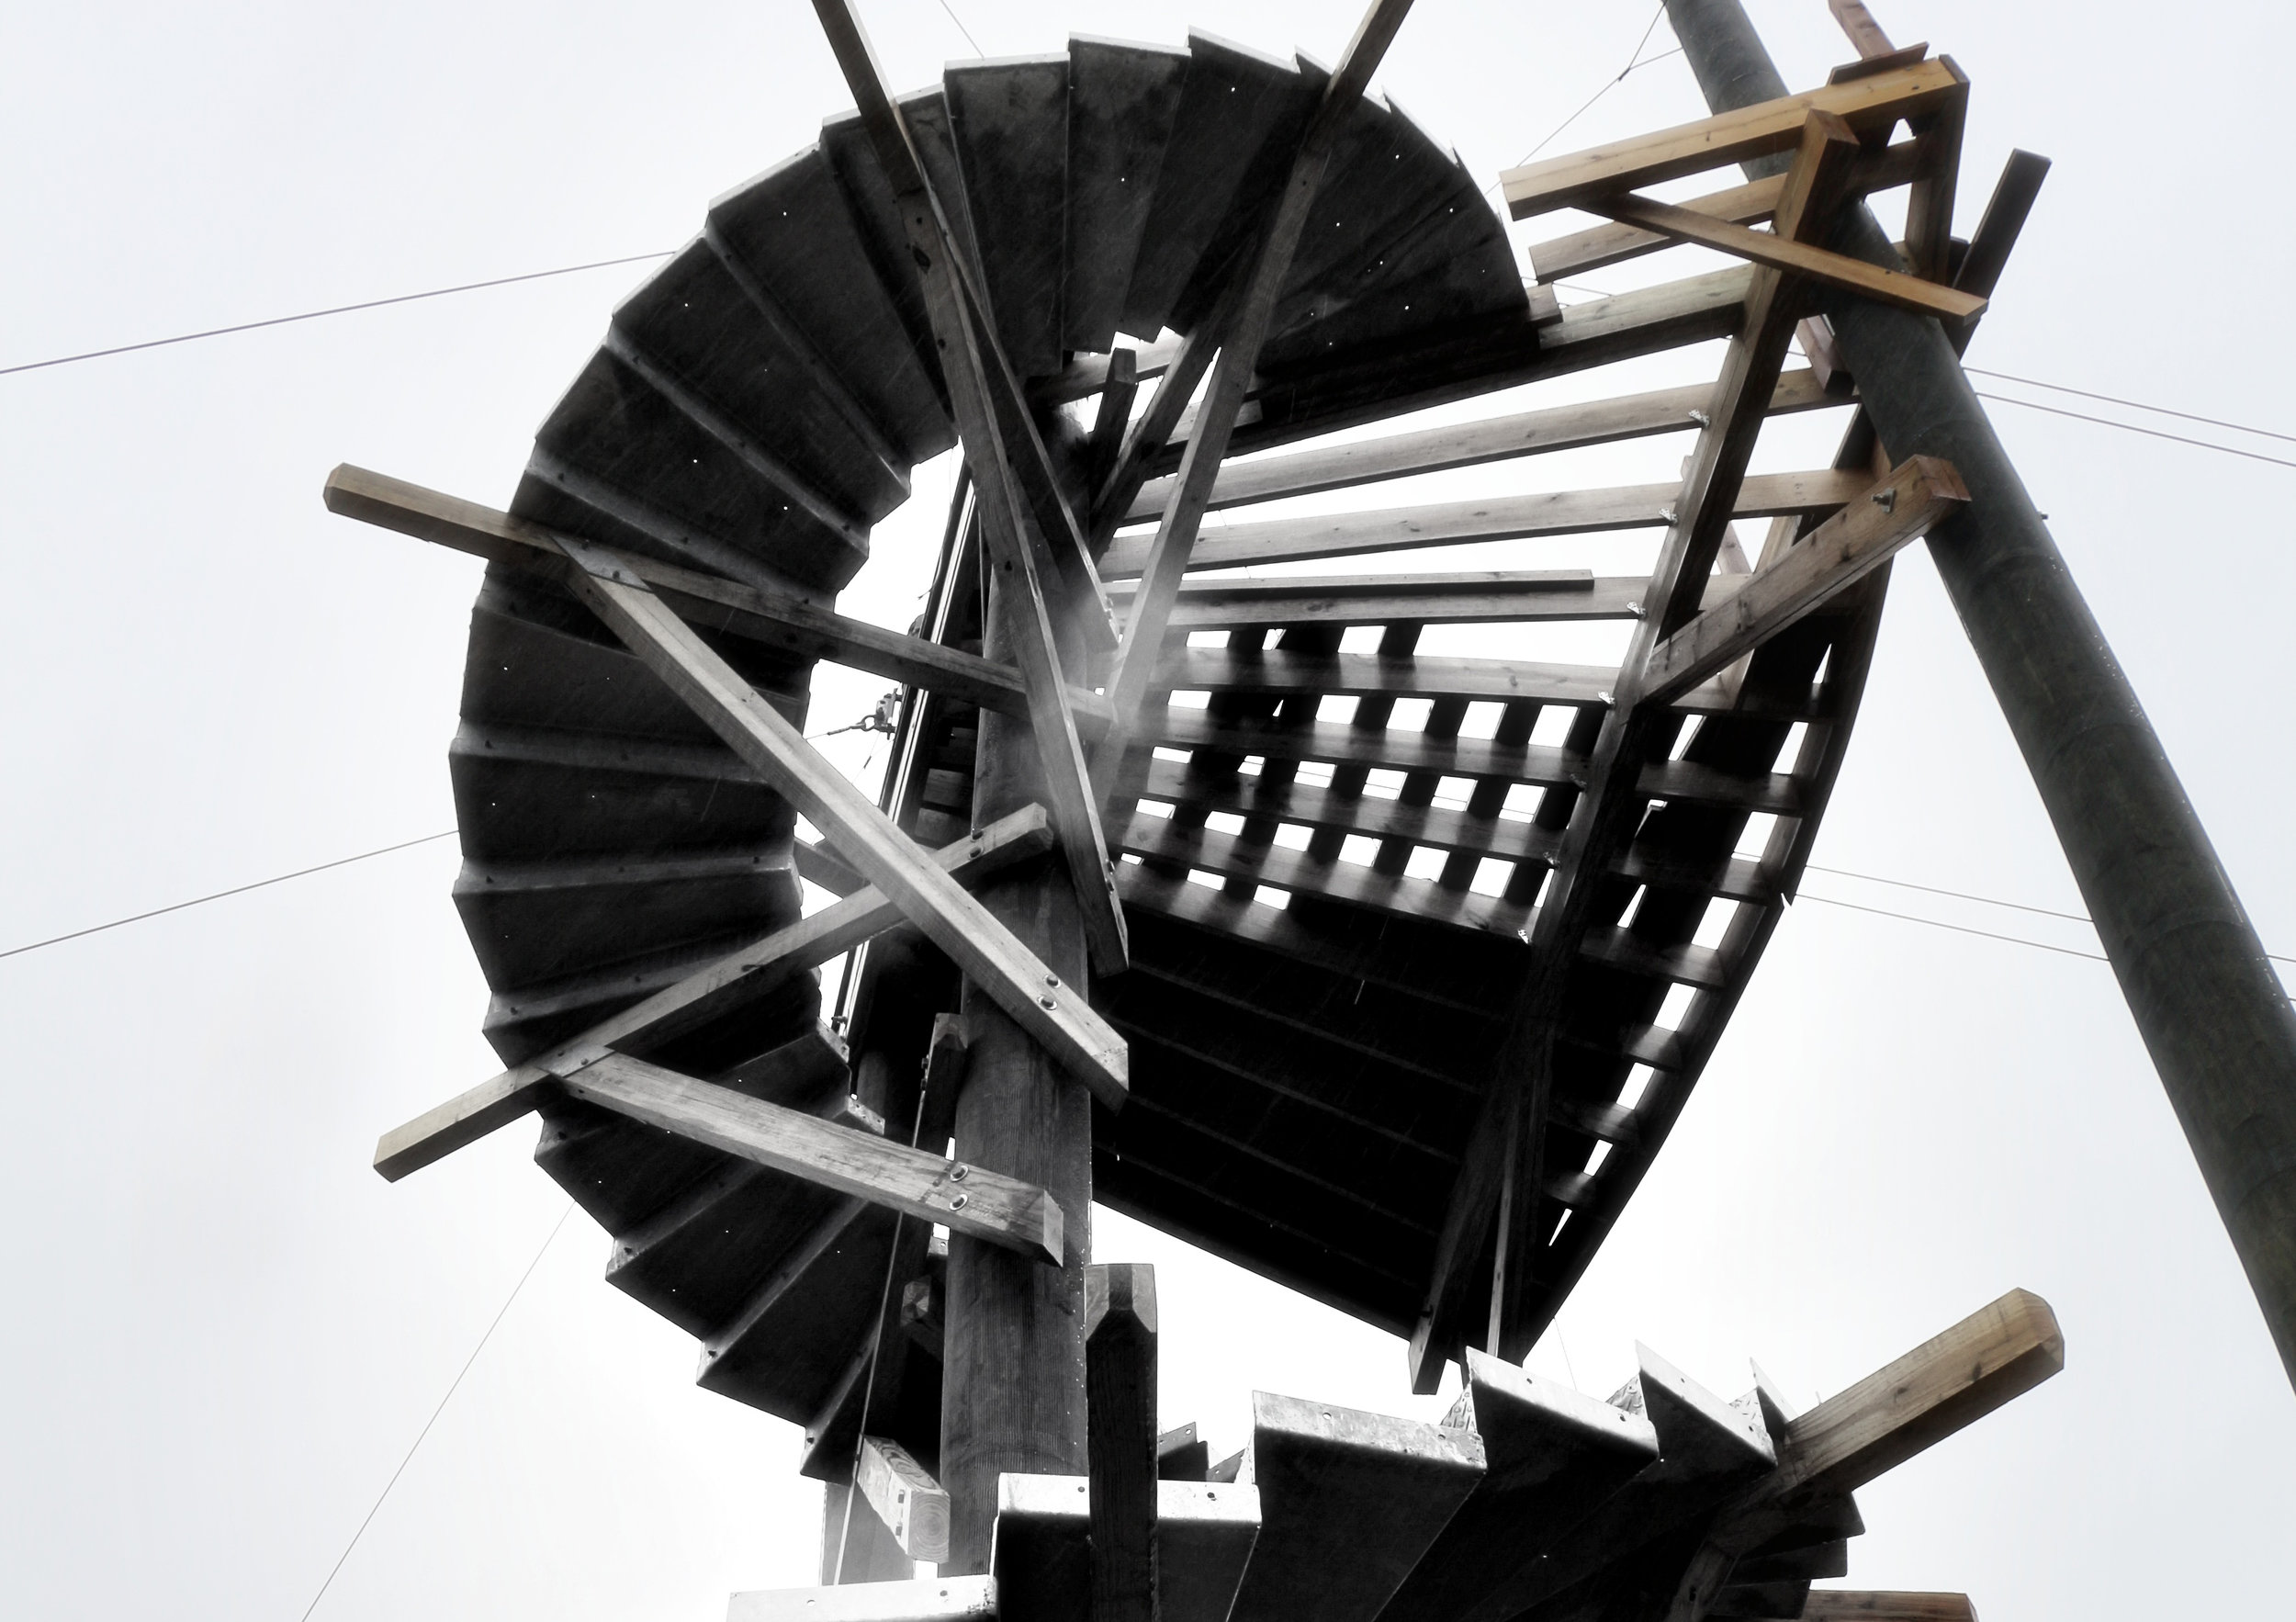 Spiral stair design being brought to life on a zipline tour launch tower.